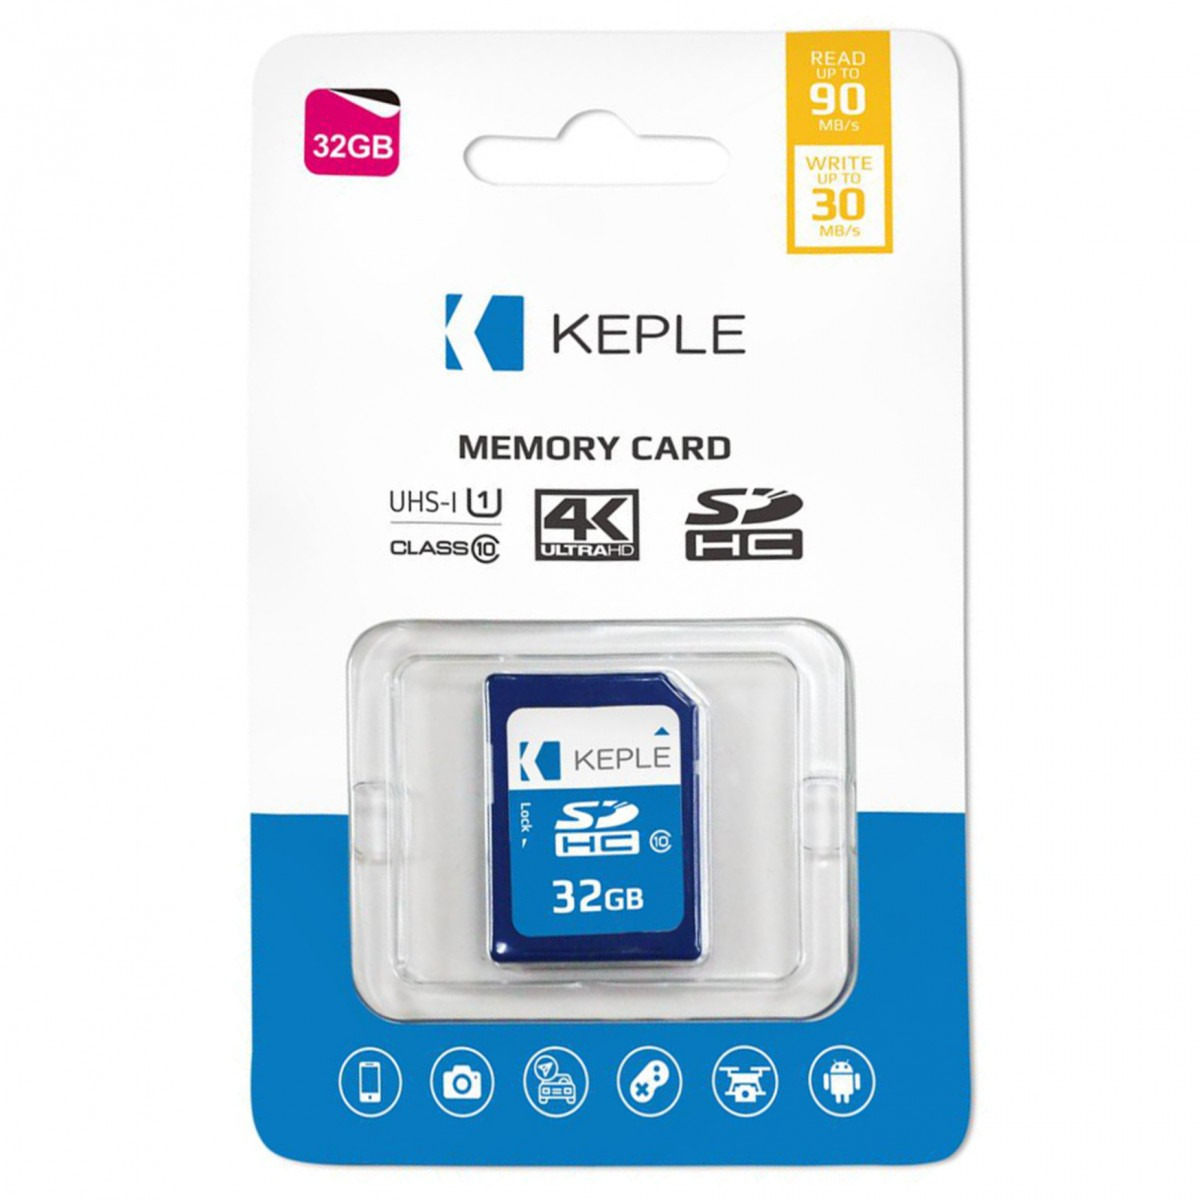 32GB SD Memory Card for Nikon Coolpix S6500, S5200, S9500, S3500, S3600,  S5300 Digital Camera